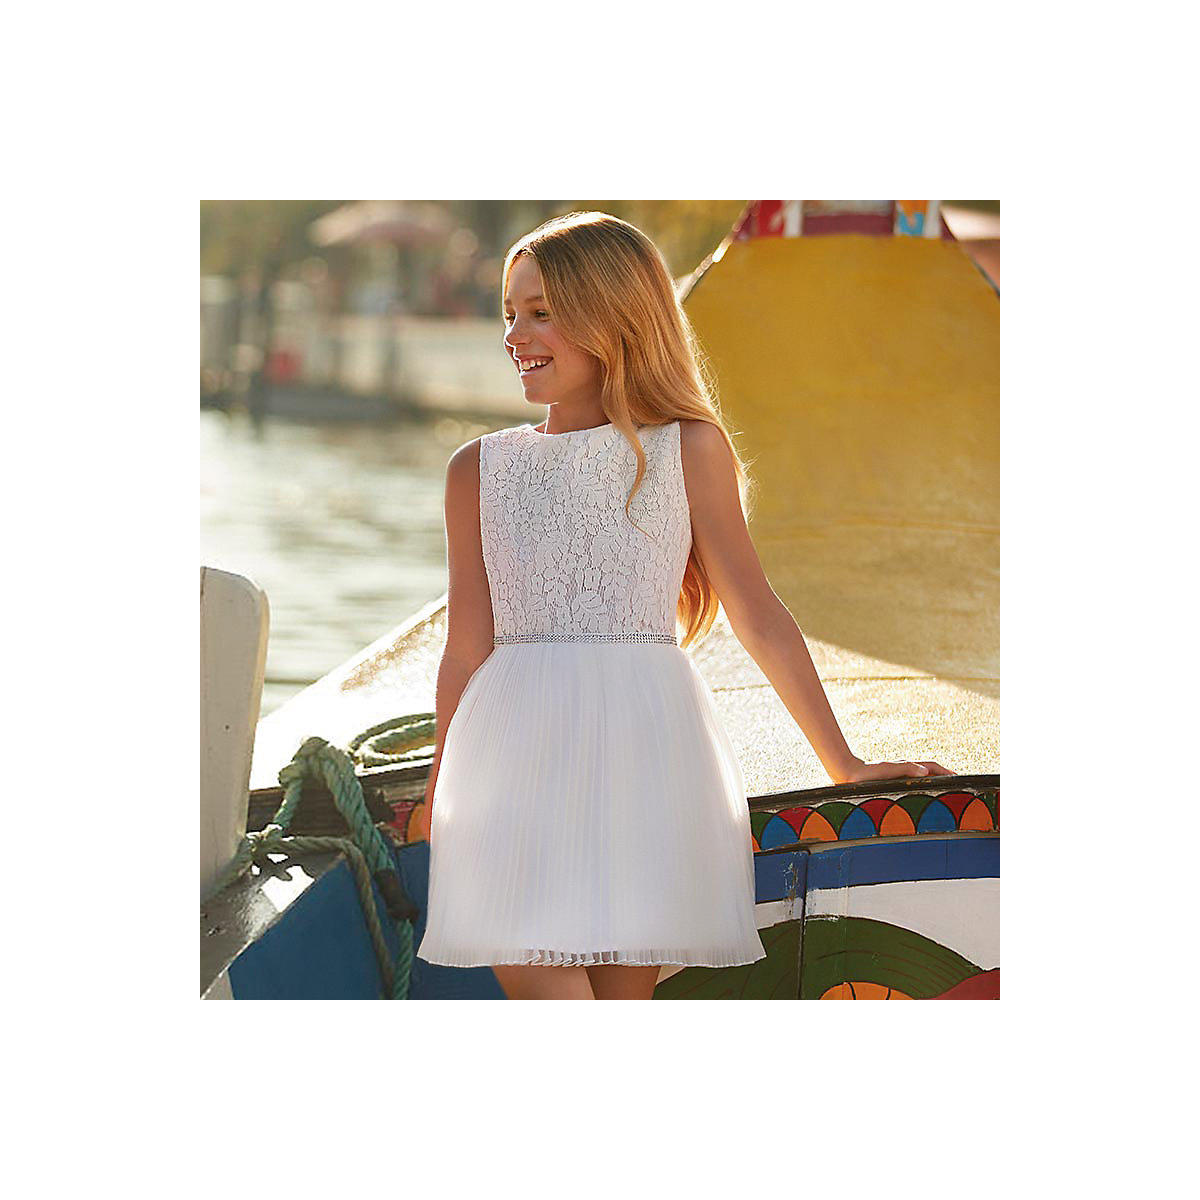 MAYORAL Dresses 10685168 Girl Children fitted pleated skirt White Polyester Casual Floral Knee-Length Sleeveless Sleeve white tube top and floral print pleated hem skirt co ord